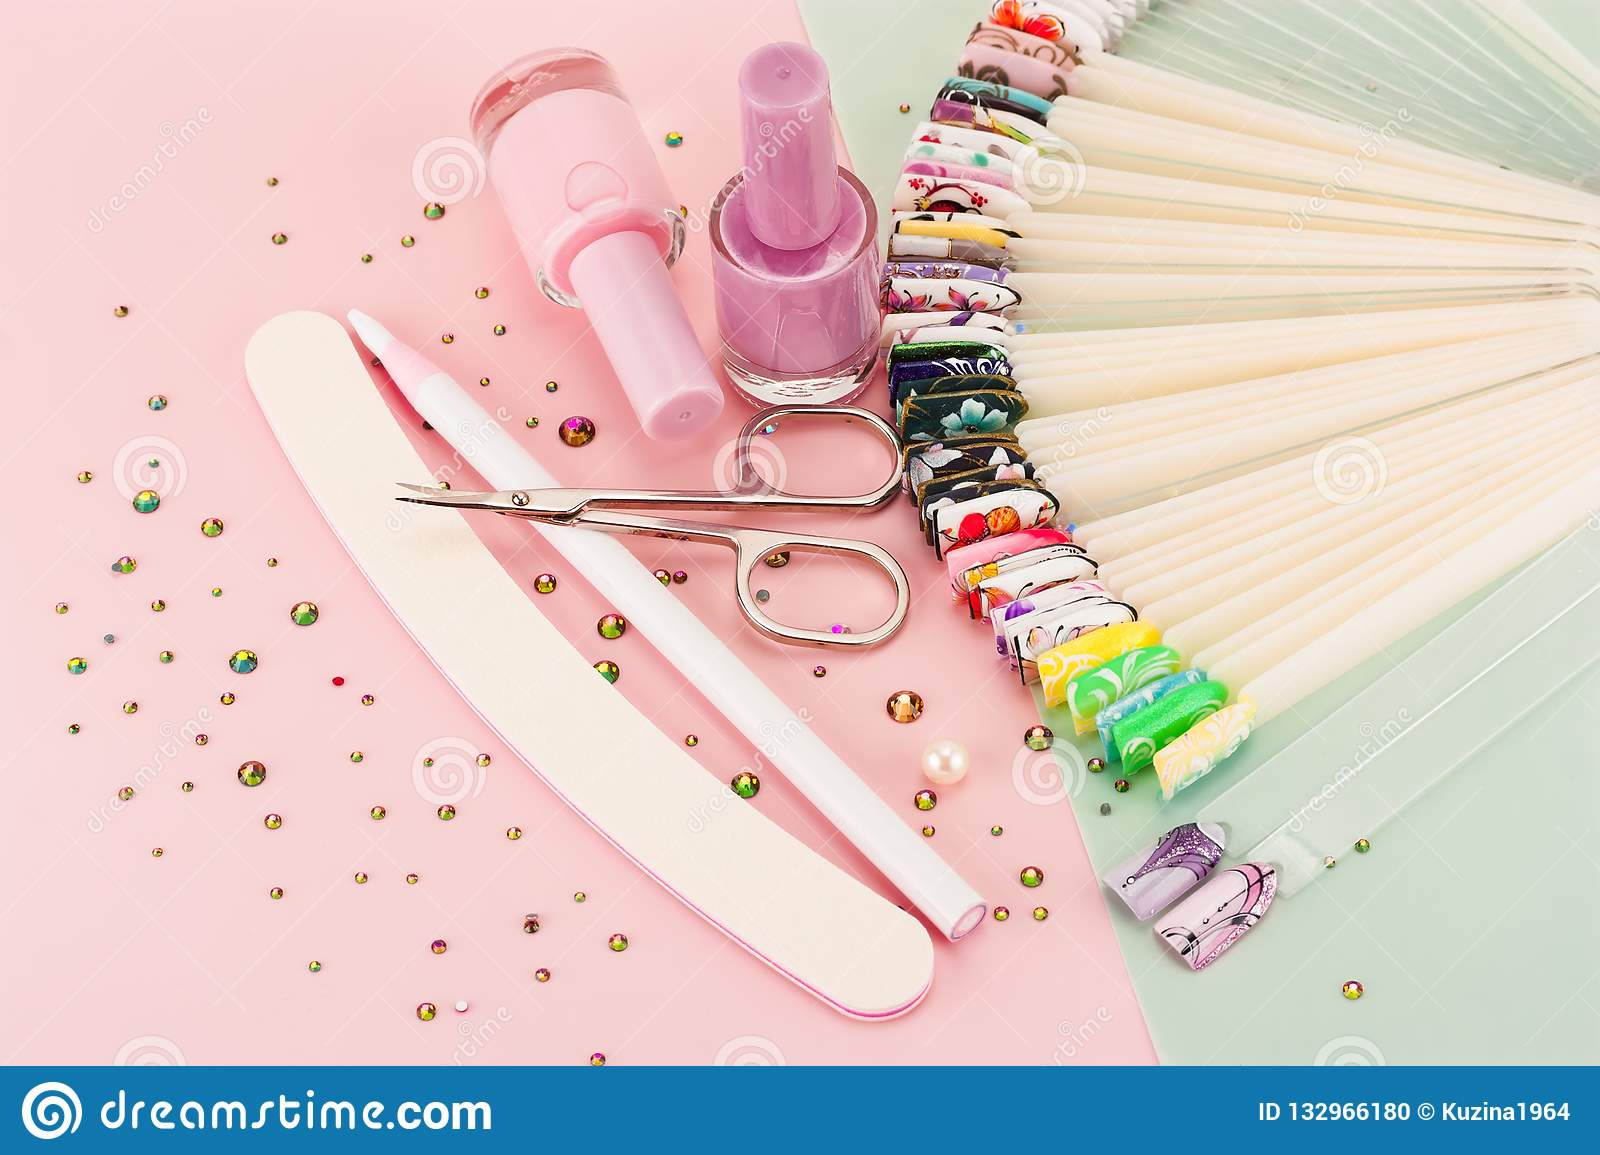 Nail designs on tips and manicure set